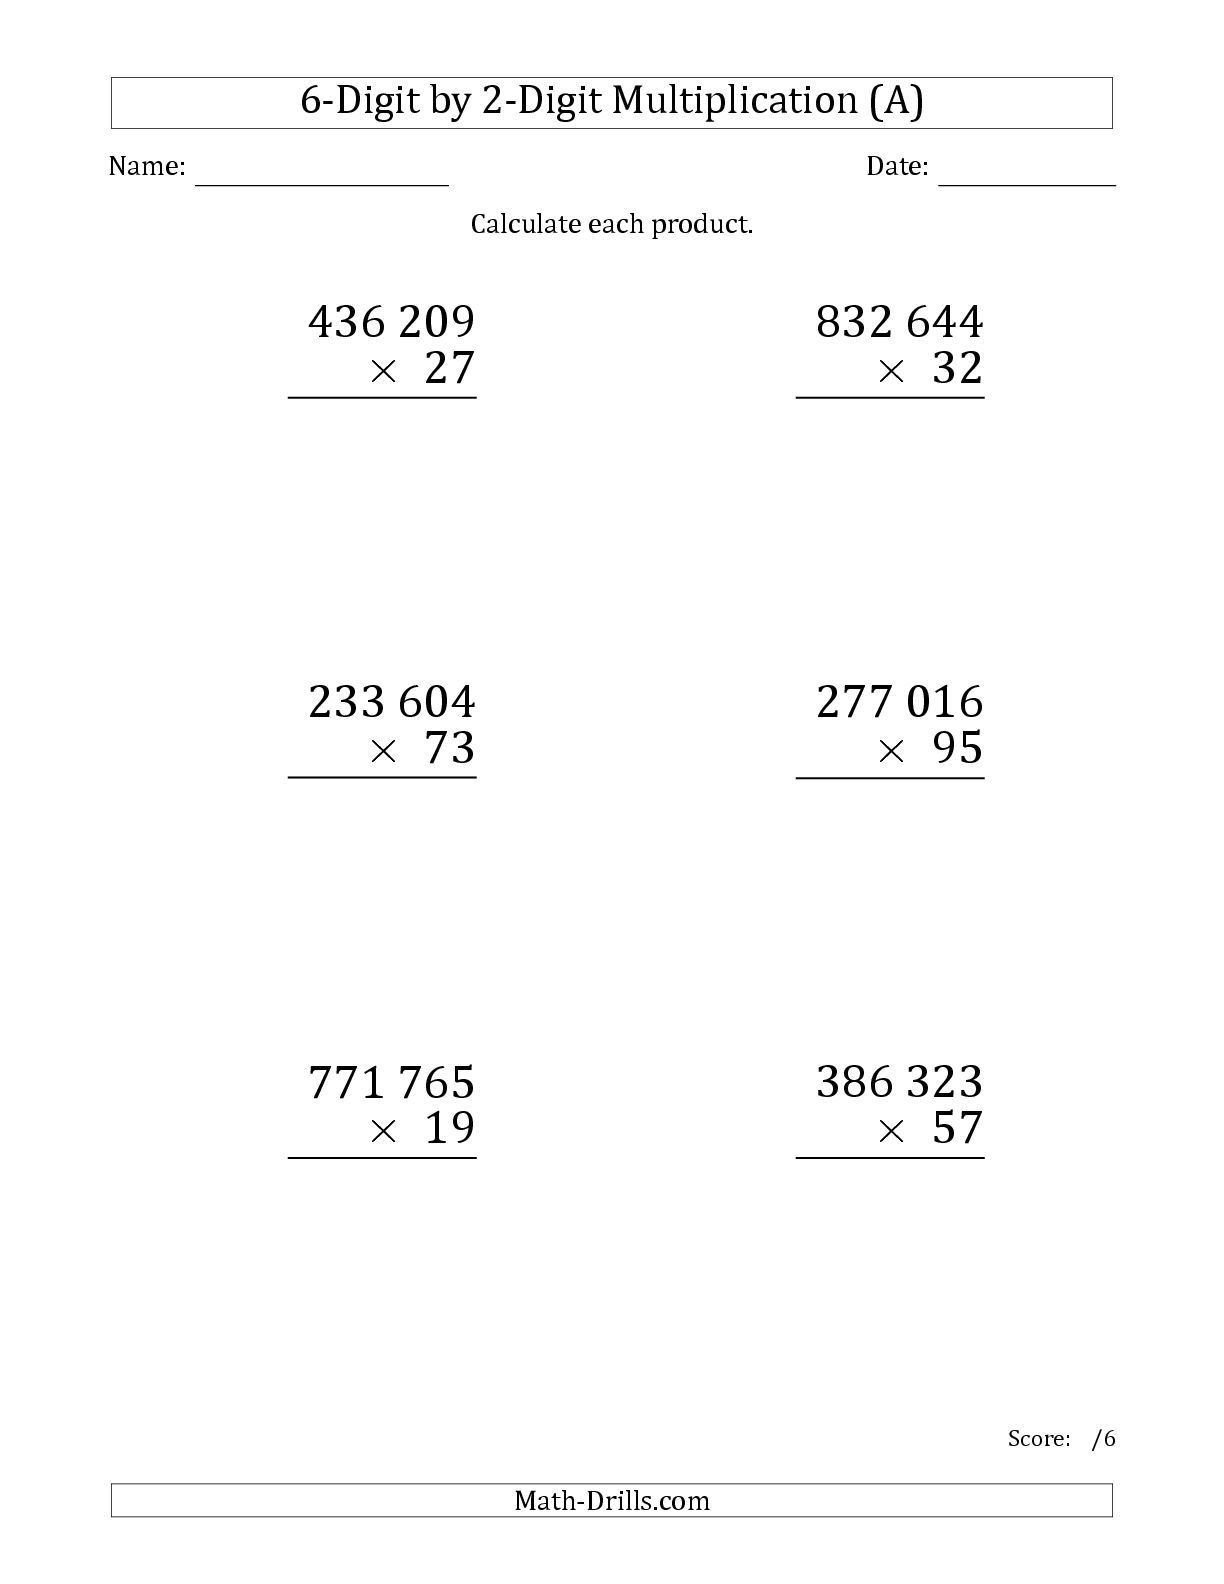 The Multiplying 6 Digit By 2 Digit Numbers Large Print With Space Separated